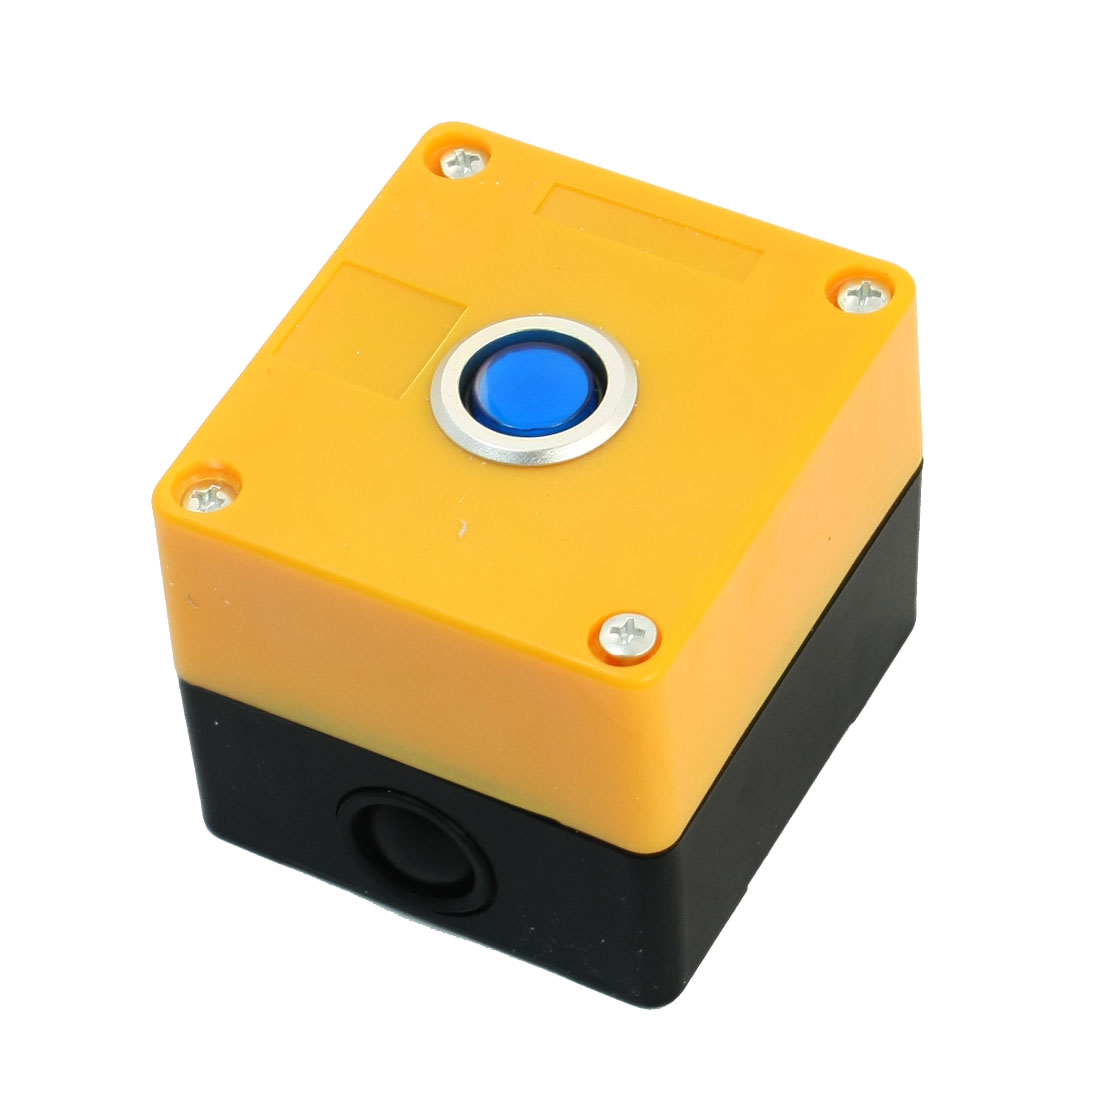 AC 220V 5A SPDT 5Pin 1NO 1NC Momentary Action Blue Cap Rectangle Yellow Plastic Push Button Station Switch Control Box